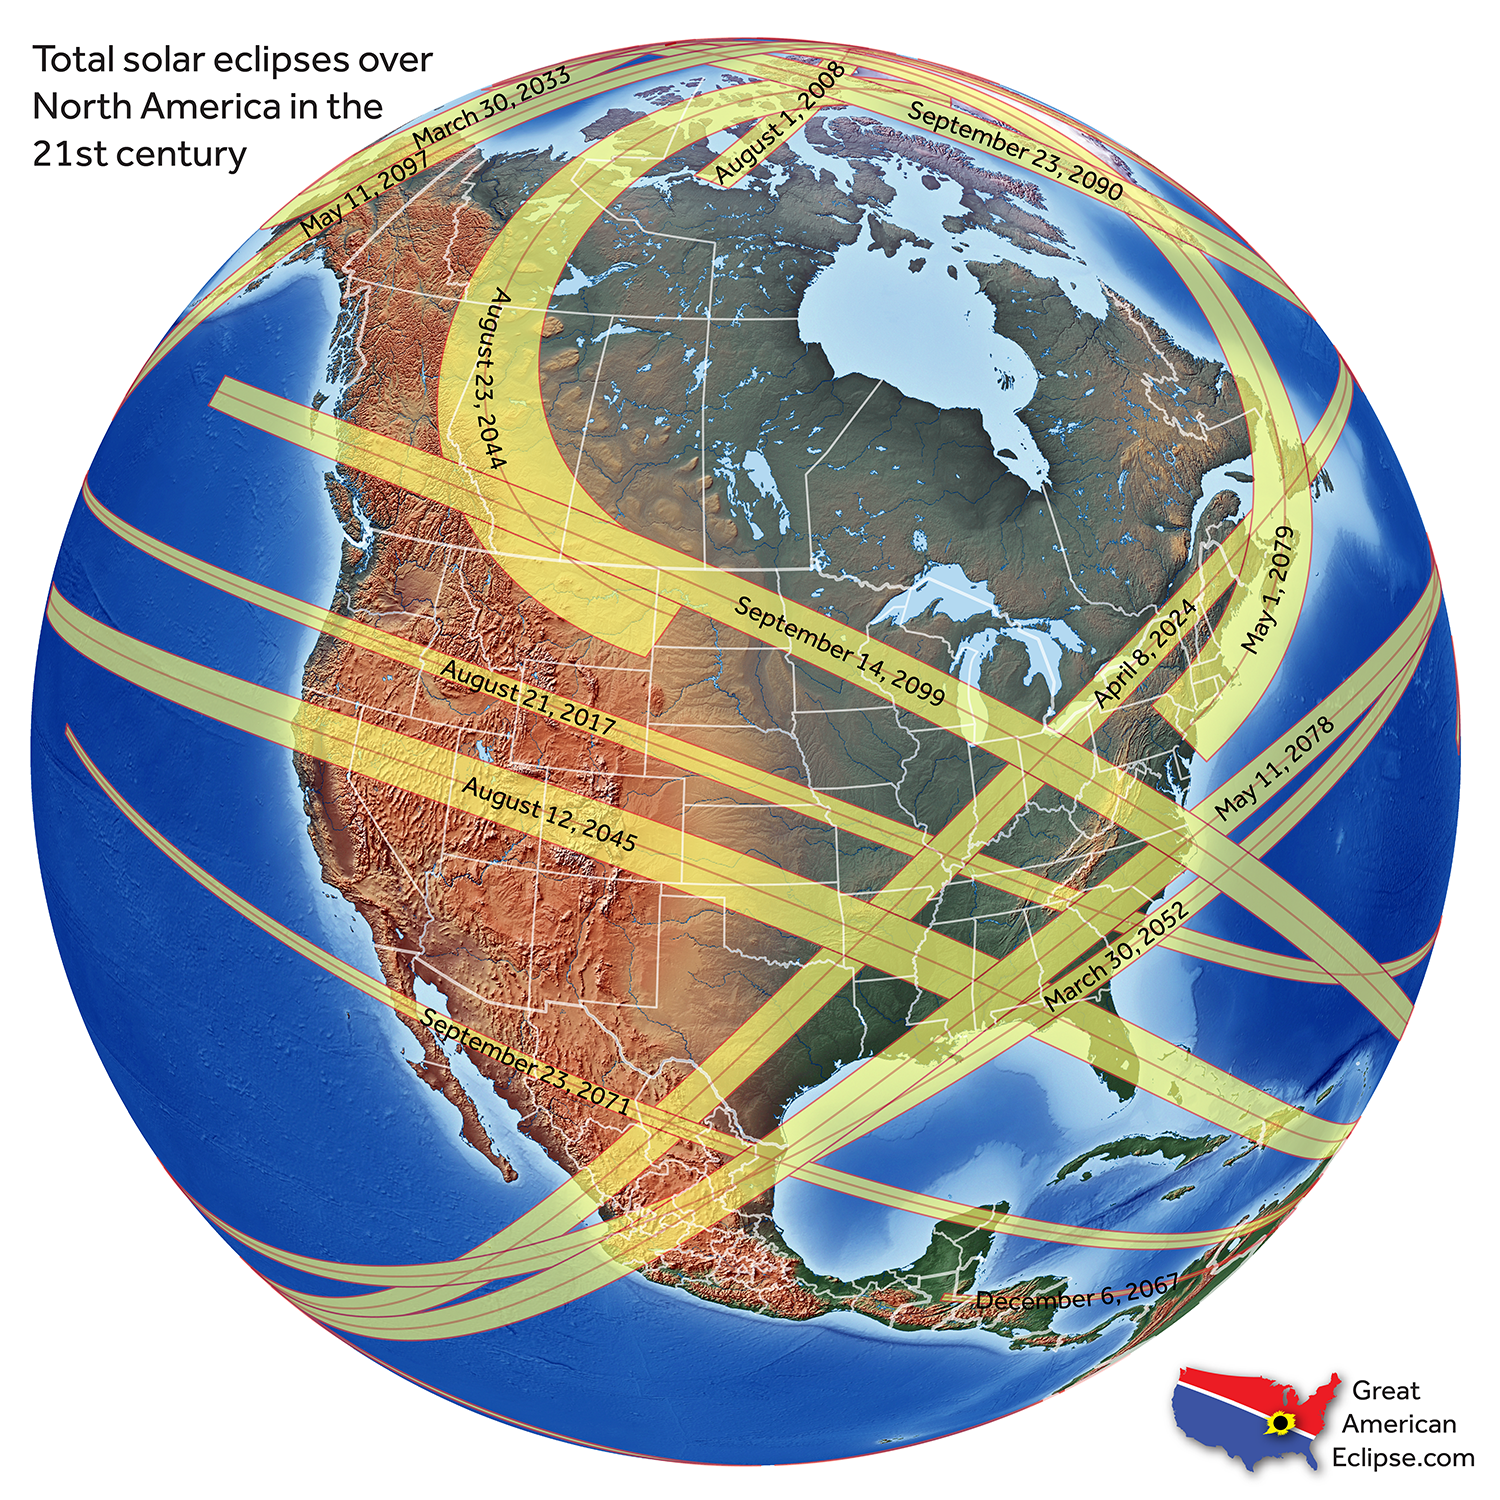 Great American Eclipse Map Future eclipses — Total solar eclipse of April 8, 2024